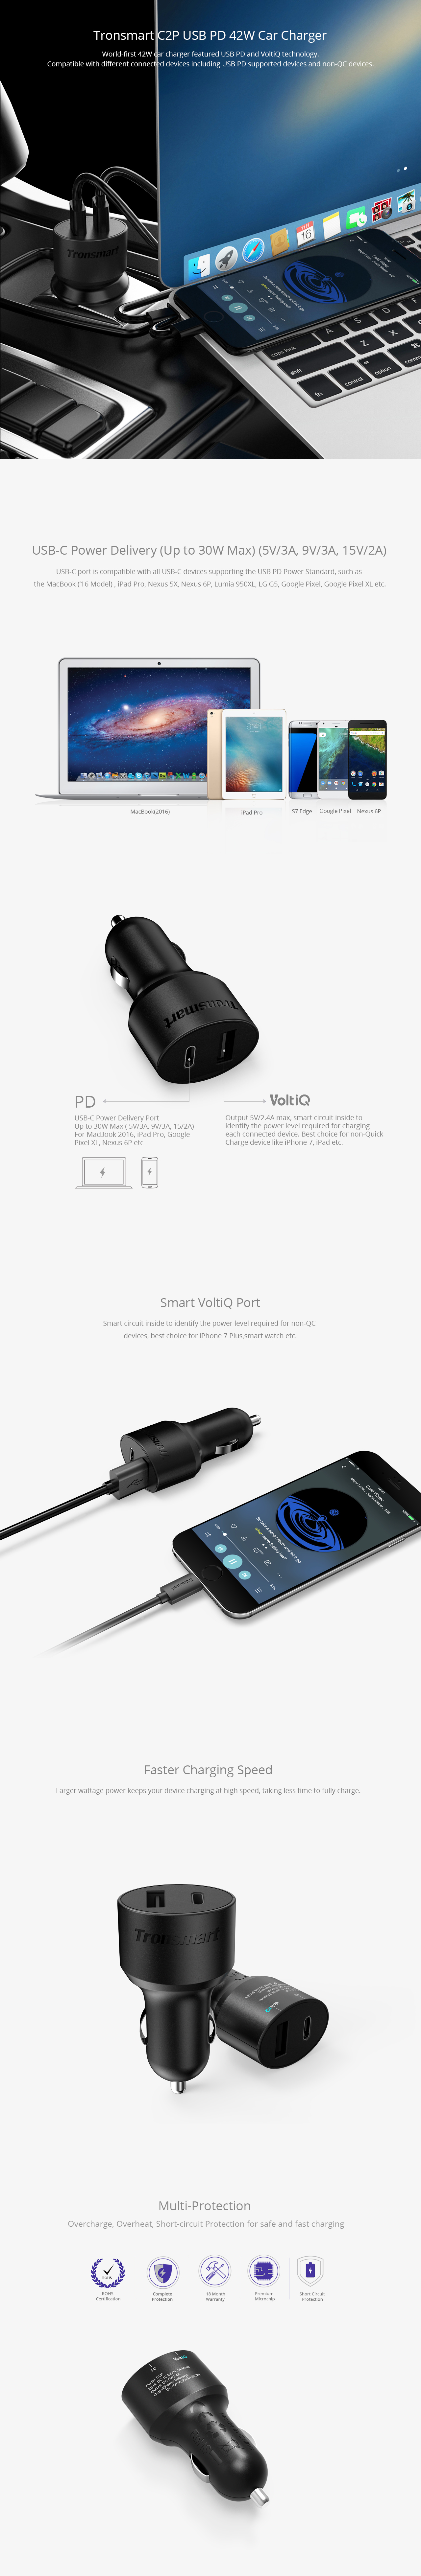 Tronsmart C2P USB C Dual Port Car Charger with Power Delivery (42W)